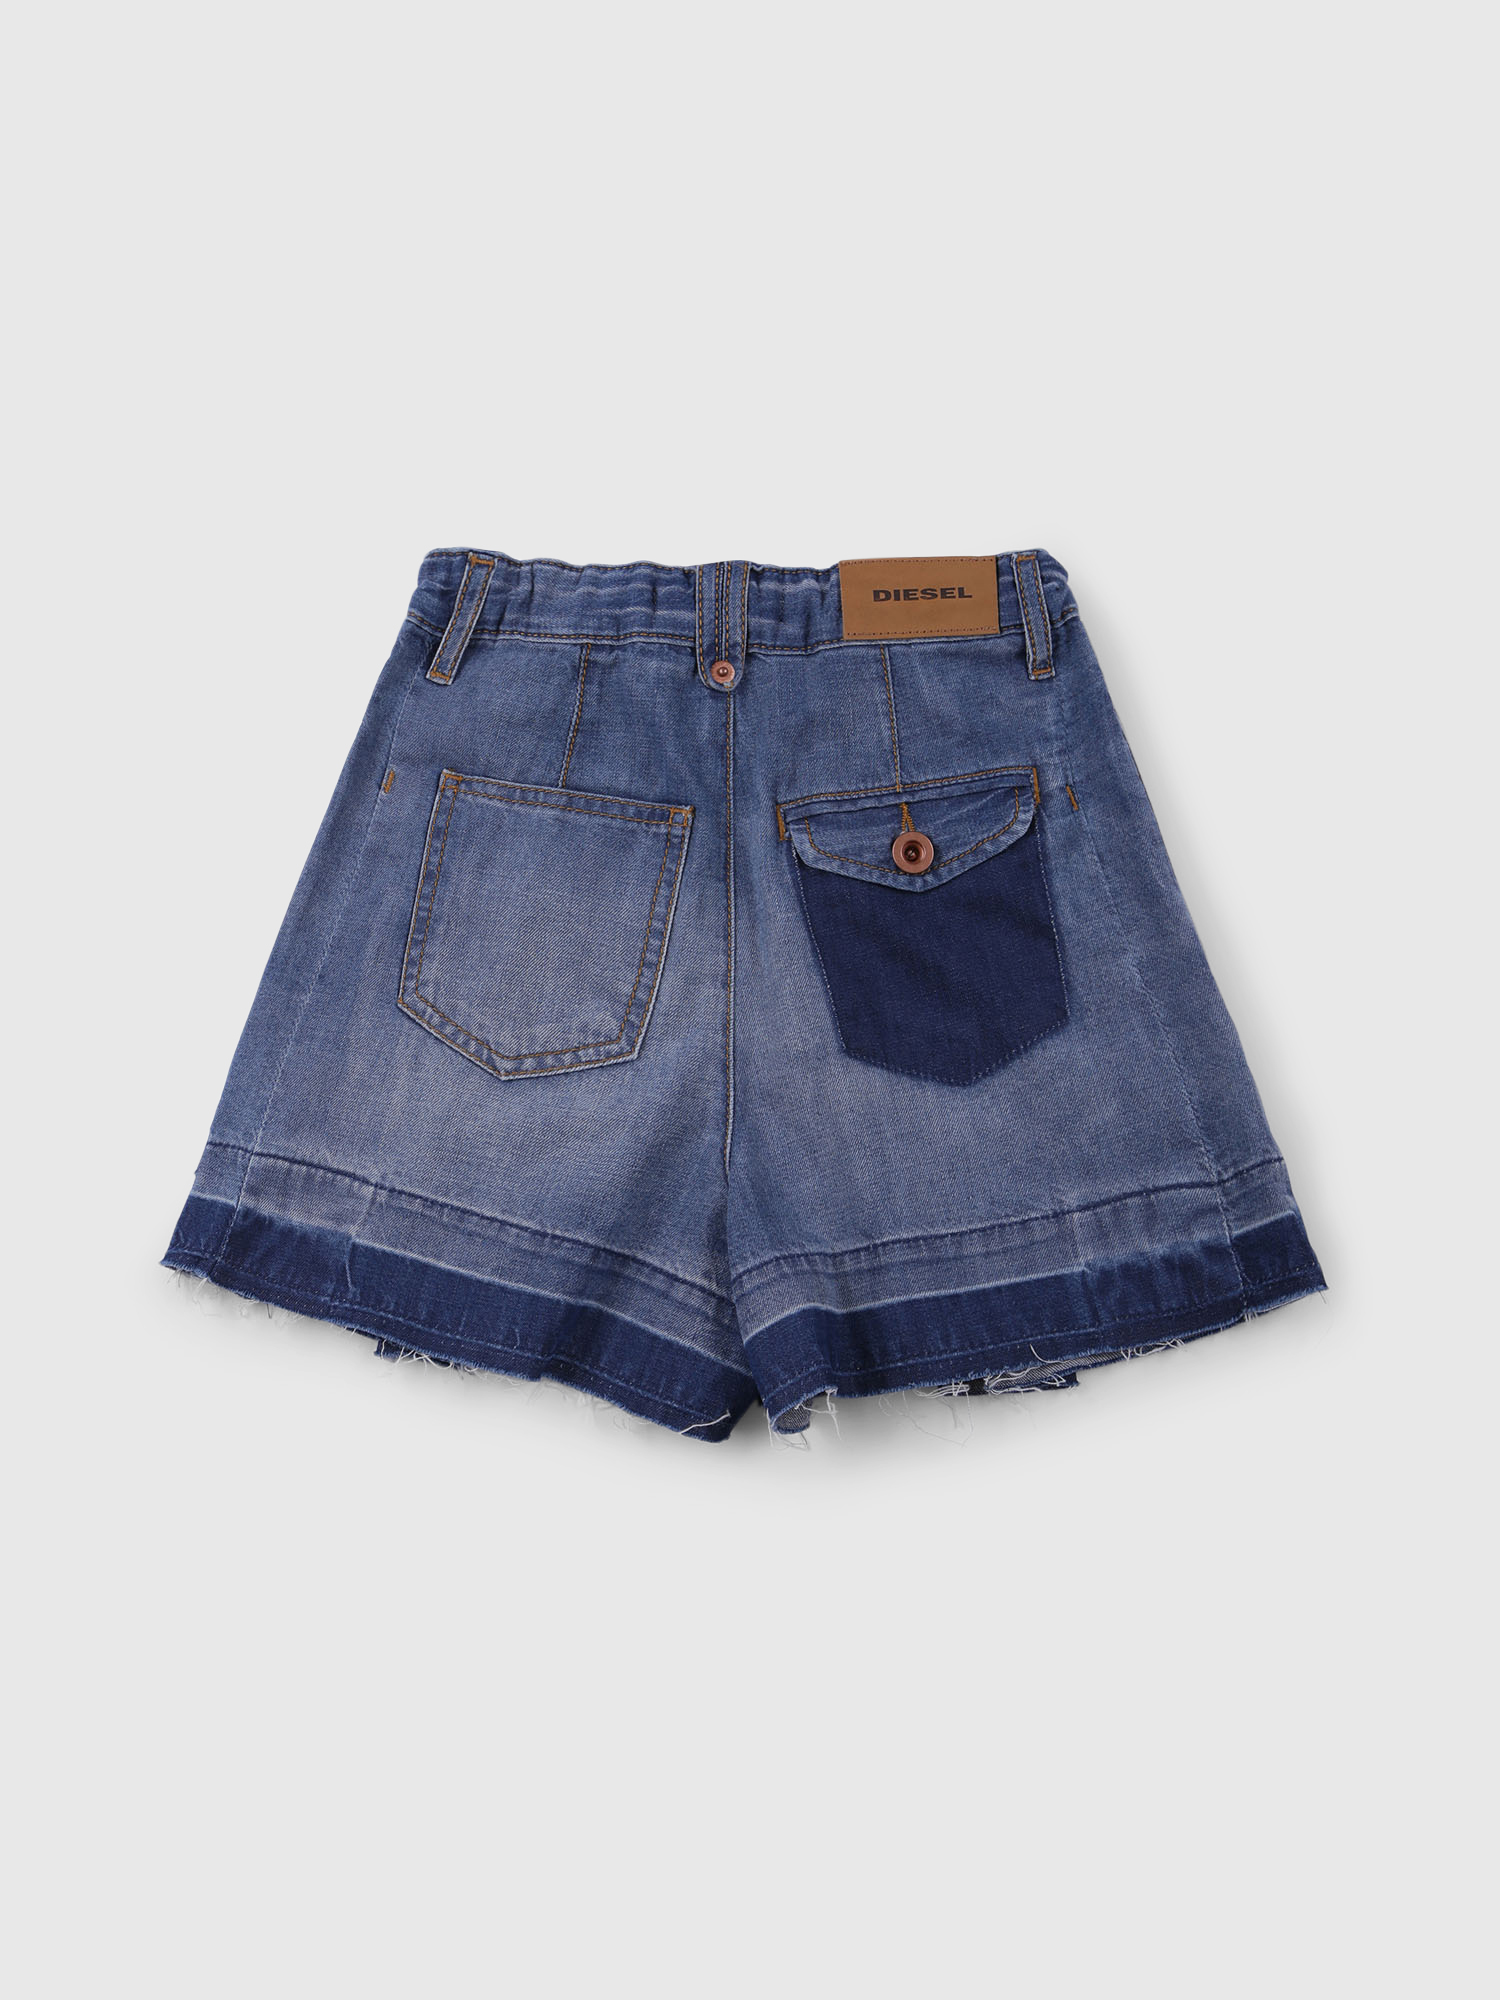 Diesel - PIZZY SH,  - Shorts - Image 2